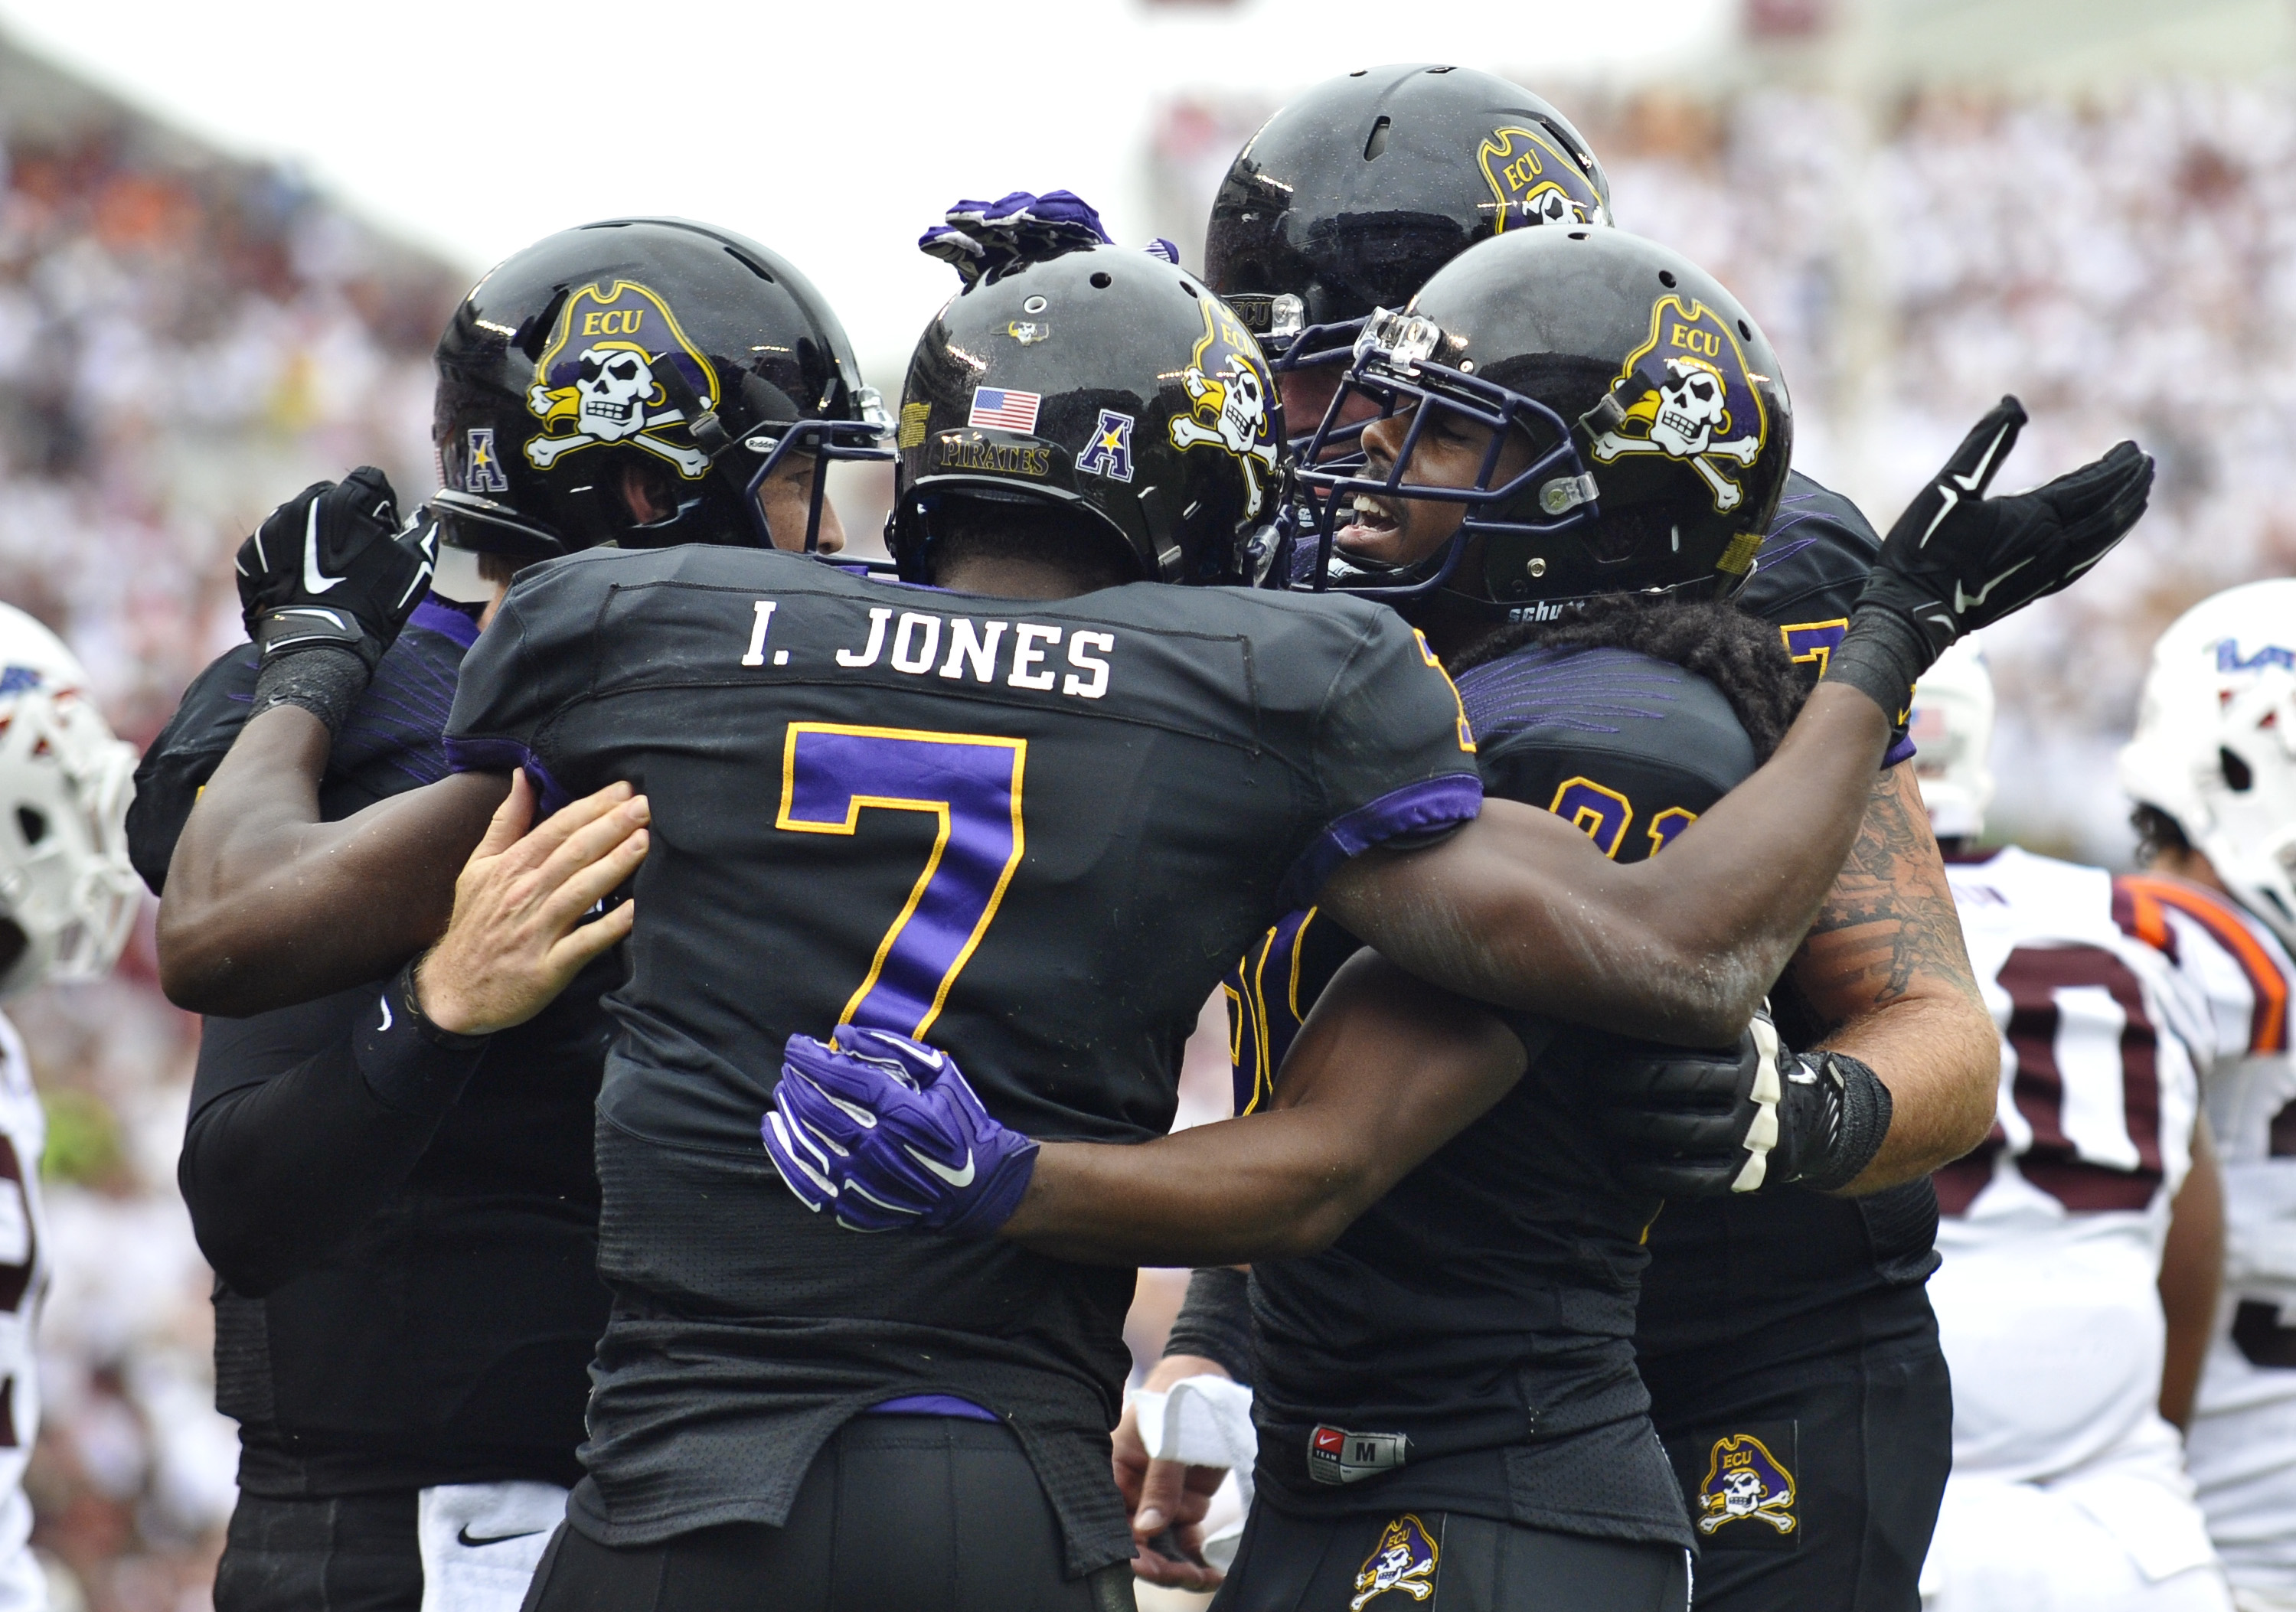 BLACKSBURG, VA - SEPTEMBER 13:  Wide receiver Isaiah Jones #7 of the East Carolina Pirates is surrounded by teammates as he celebrates his touchdown in the first half at Lane Stadium on September 13, 2014 in Blacksburg, Virginia. East Carolina leads Virginia Tech 21-7 at halftime.  (Photo by Michael Shroyer/Getty Images)